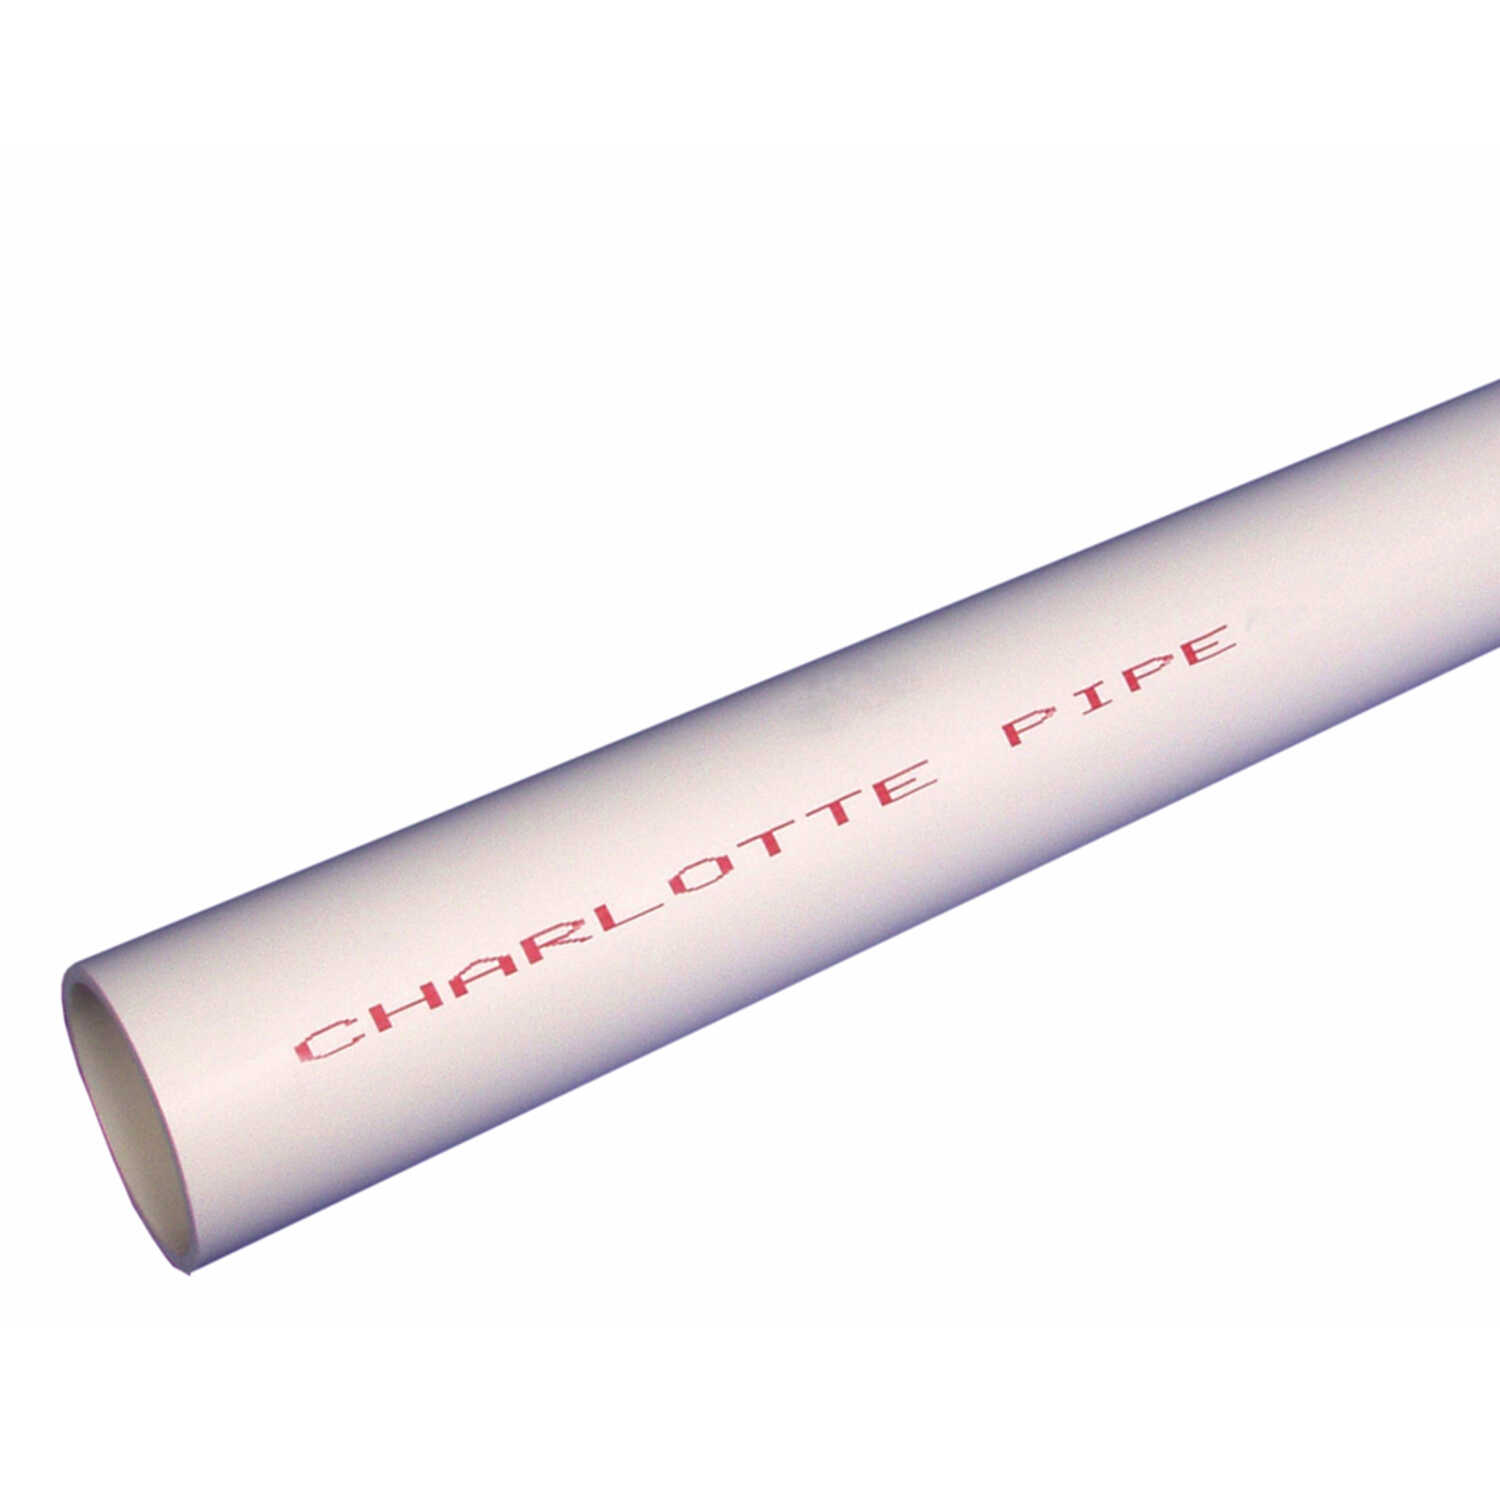 Cresline  PVC Pipe  1 in. Dia. x 10 ft. L Plain End  Schedule 40  450 psi